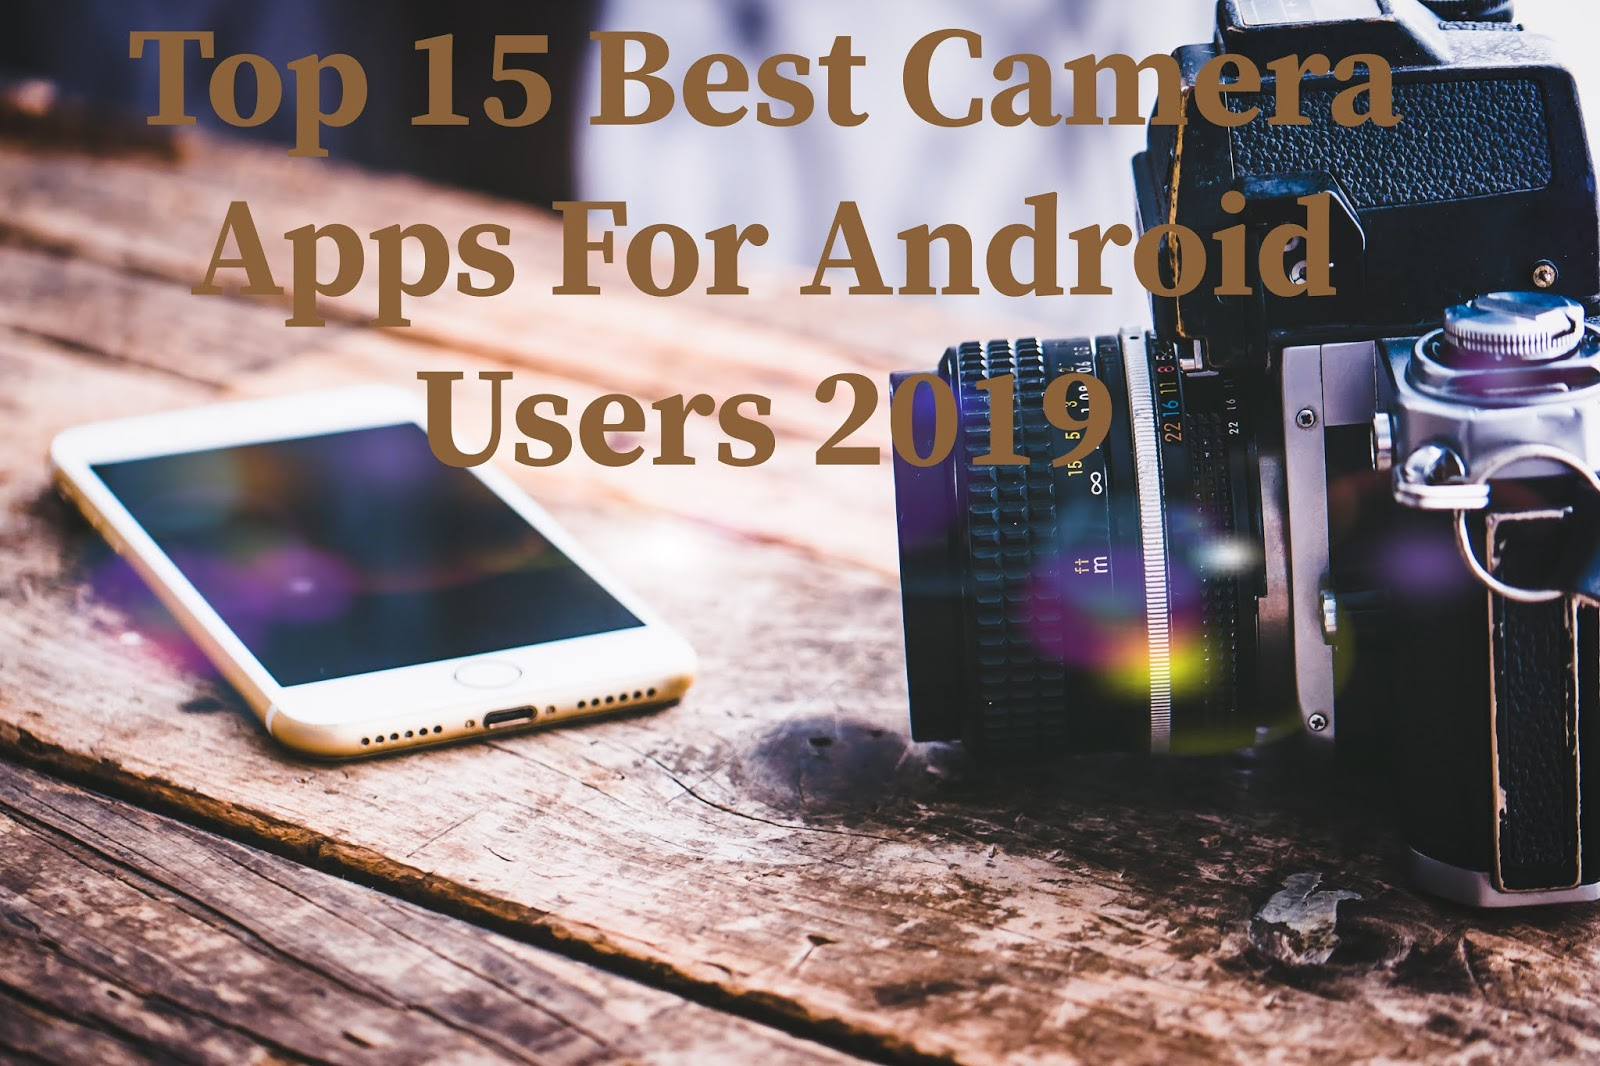 df90e35b3 Top 15 Best Camera Apps For Android users 2019 - Tech Solution and ...